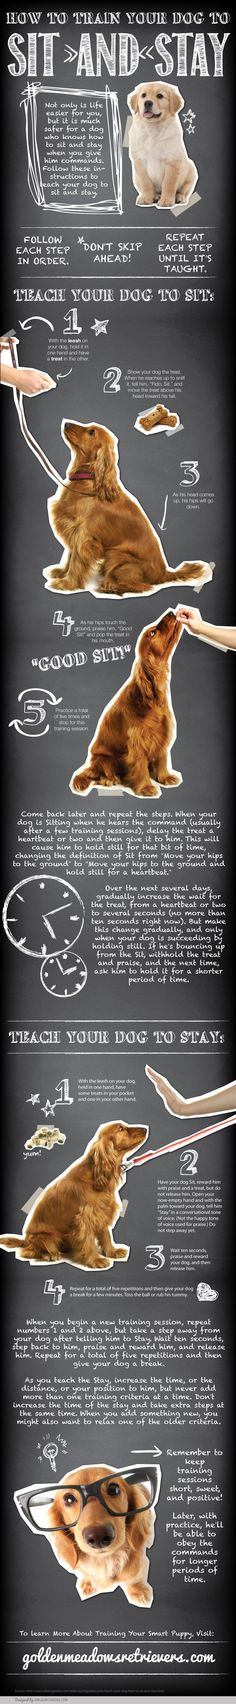 #INFOGRAPHIC: Train Your Dog to Sit & Stay (by Golden Meadows Retrievers) #Dogs